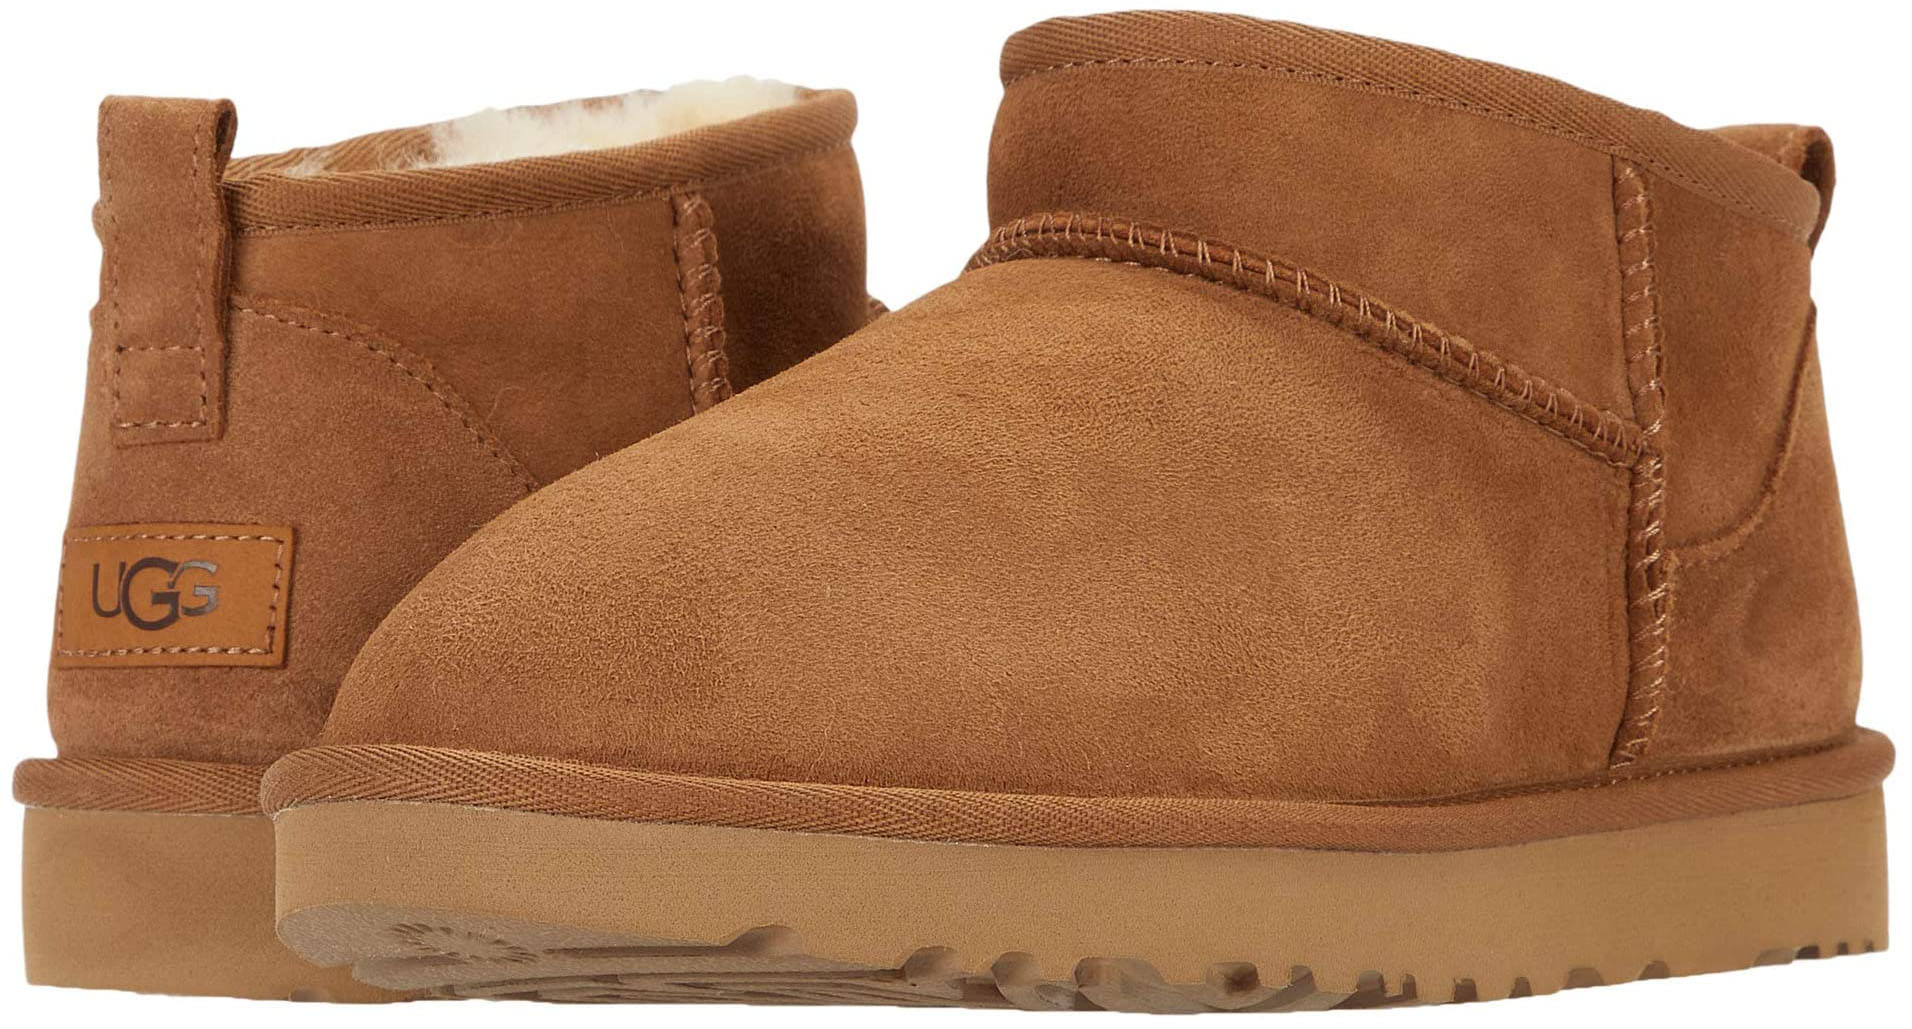 UGG's Classic Ultra Mini is a cozy way to finish just about any outfit